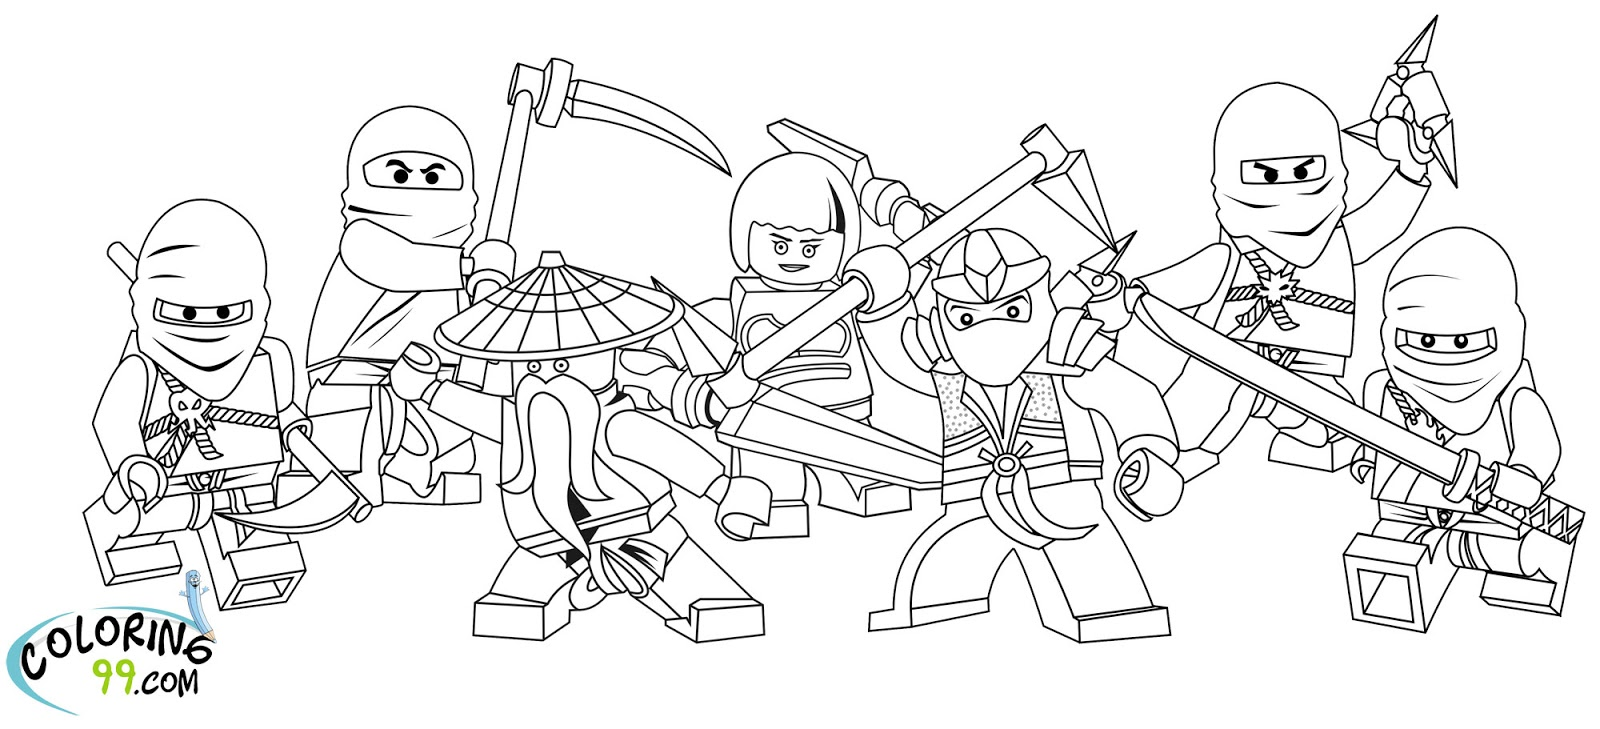 Free Coloring Pages Of Ninjago Malvorlagen Lego Ninjago Colouring Pages To Print